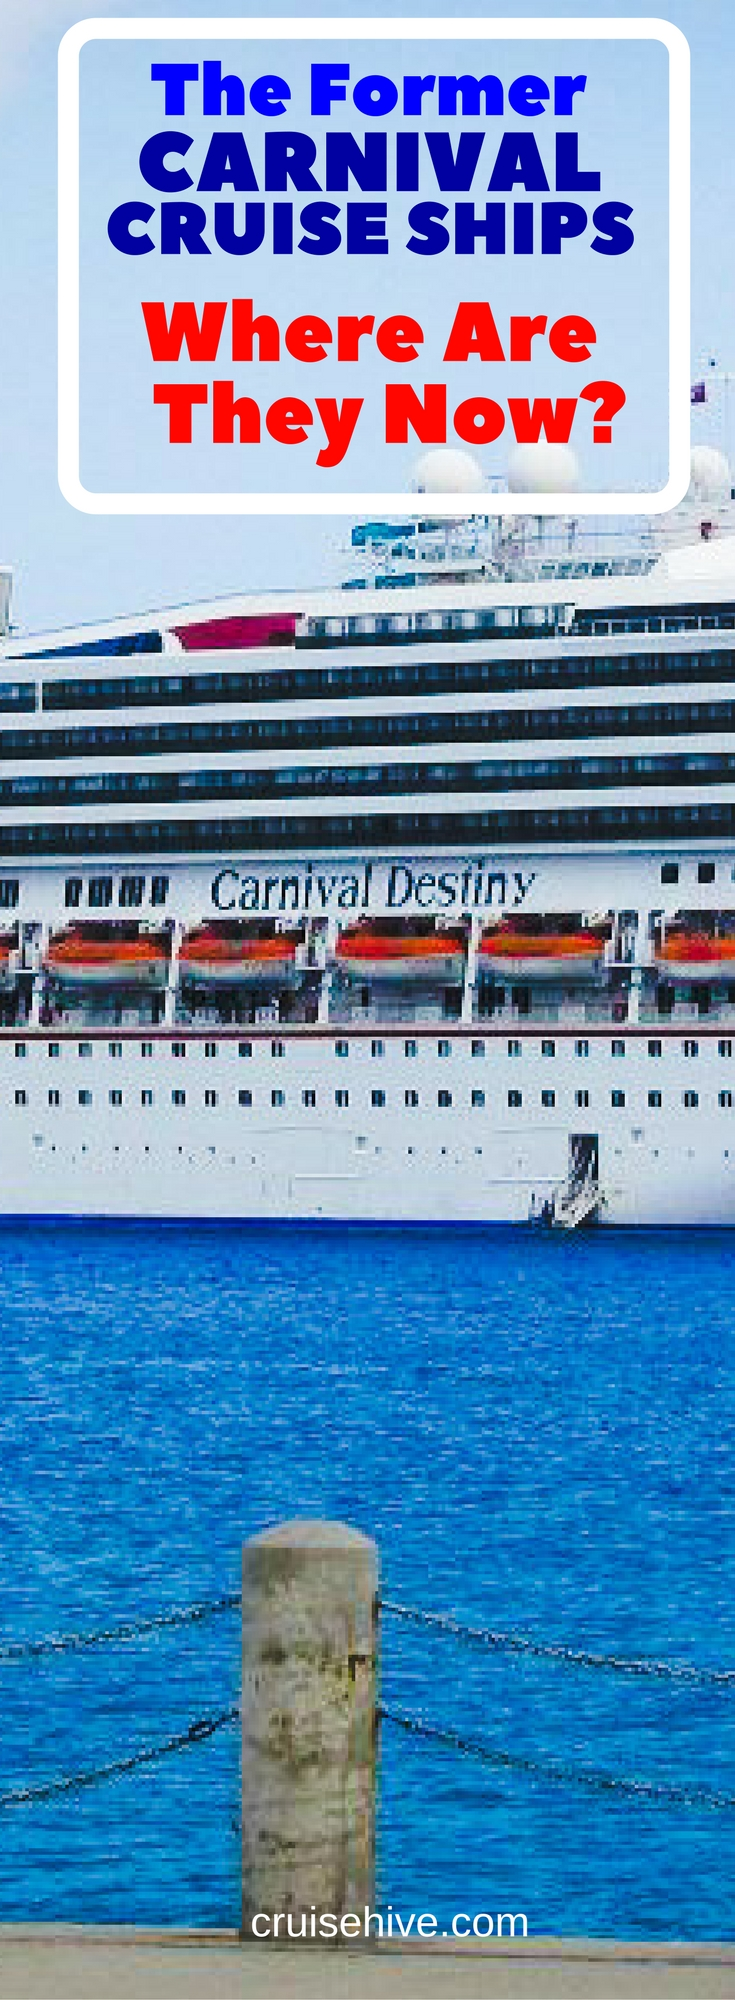 The Former Carnival Cruise Ships Where Are They Now